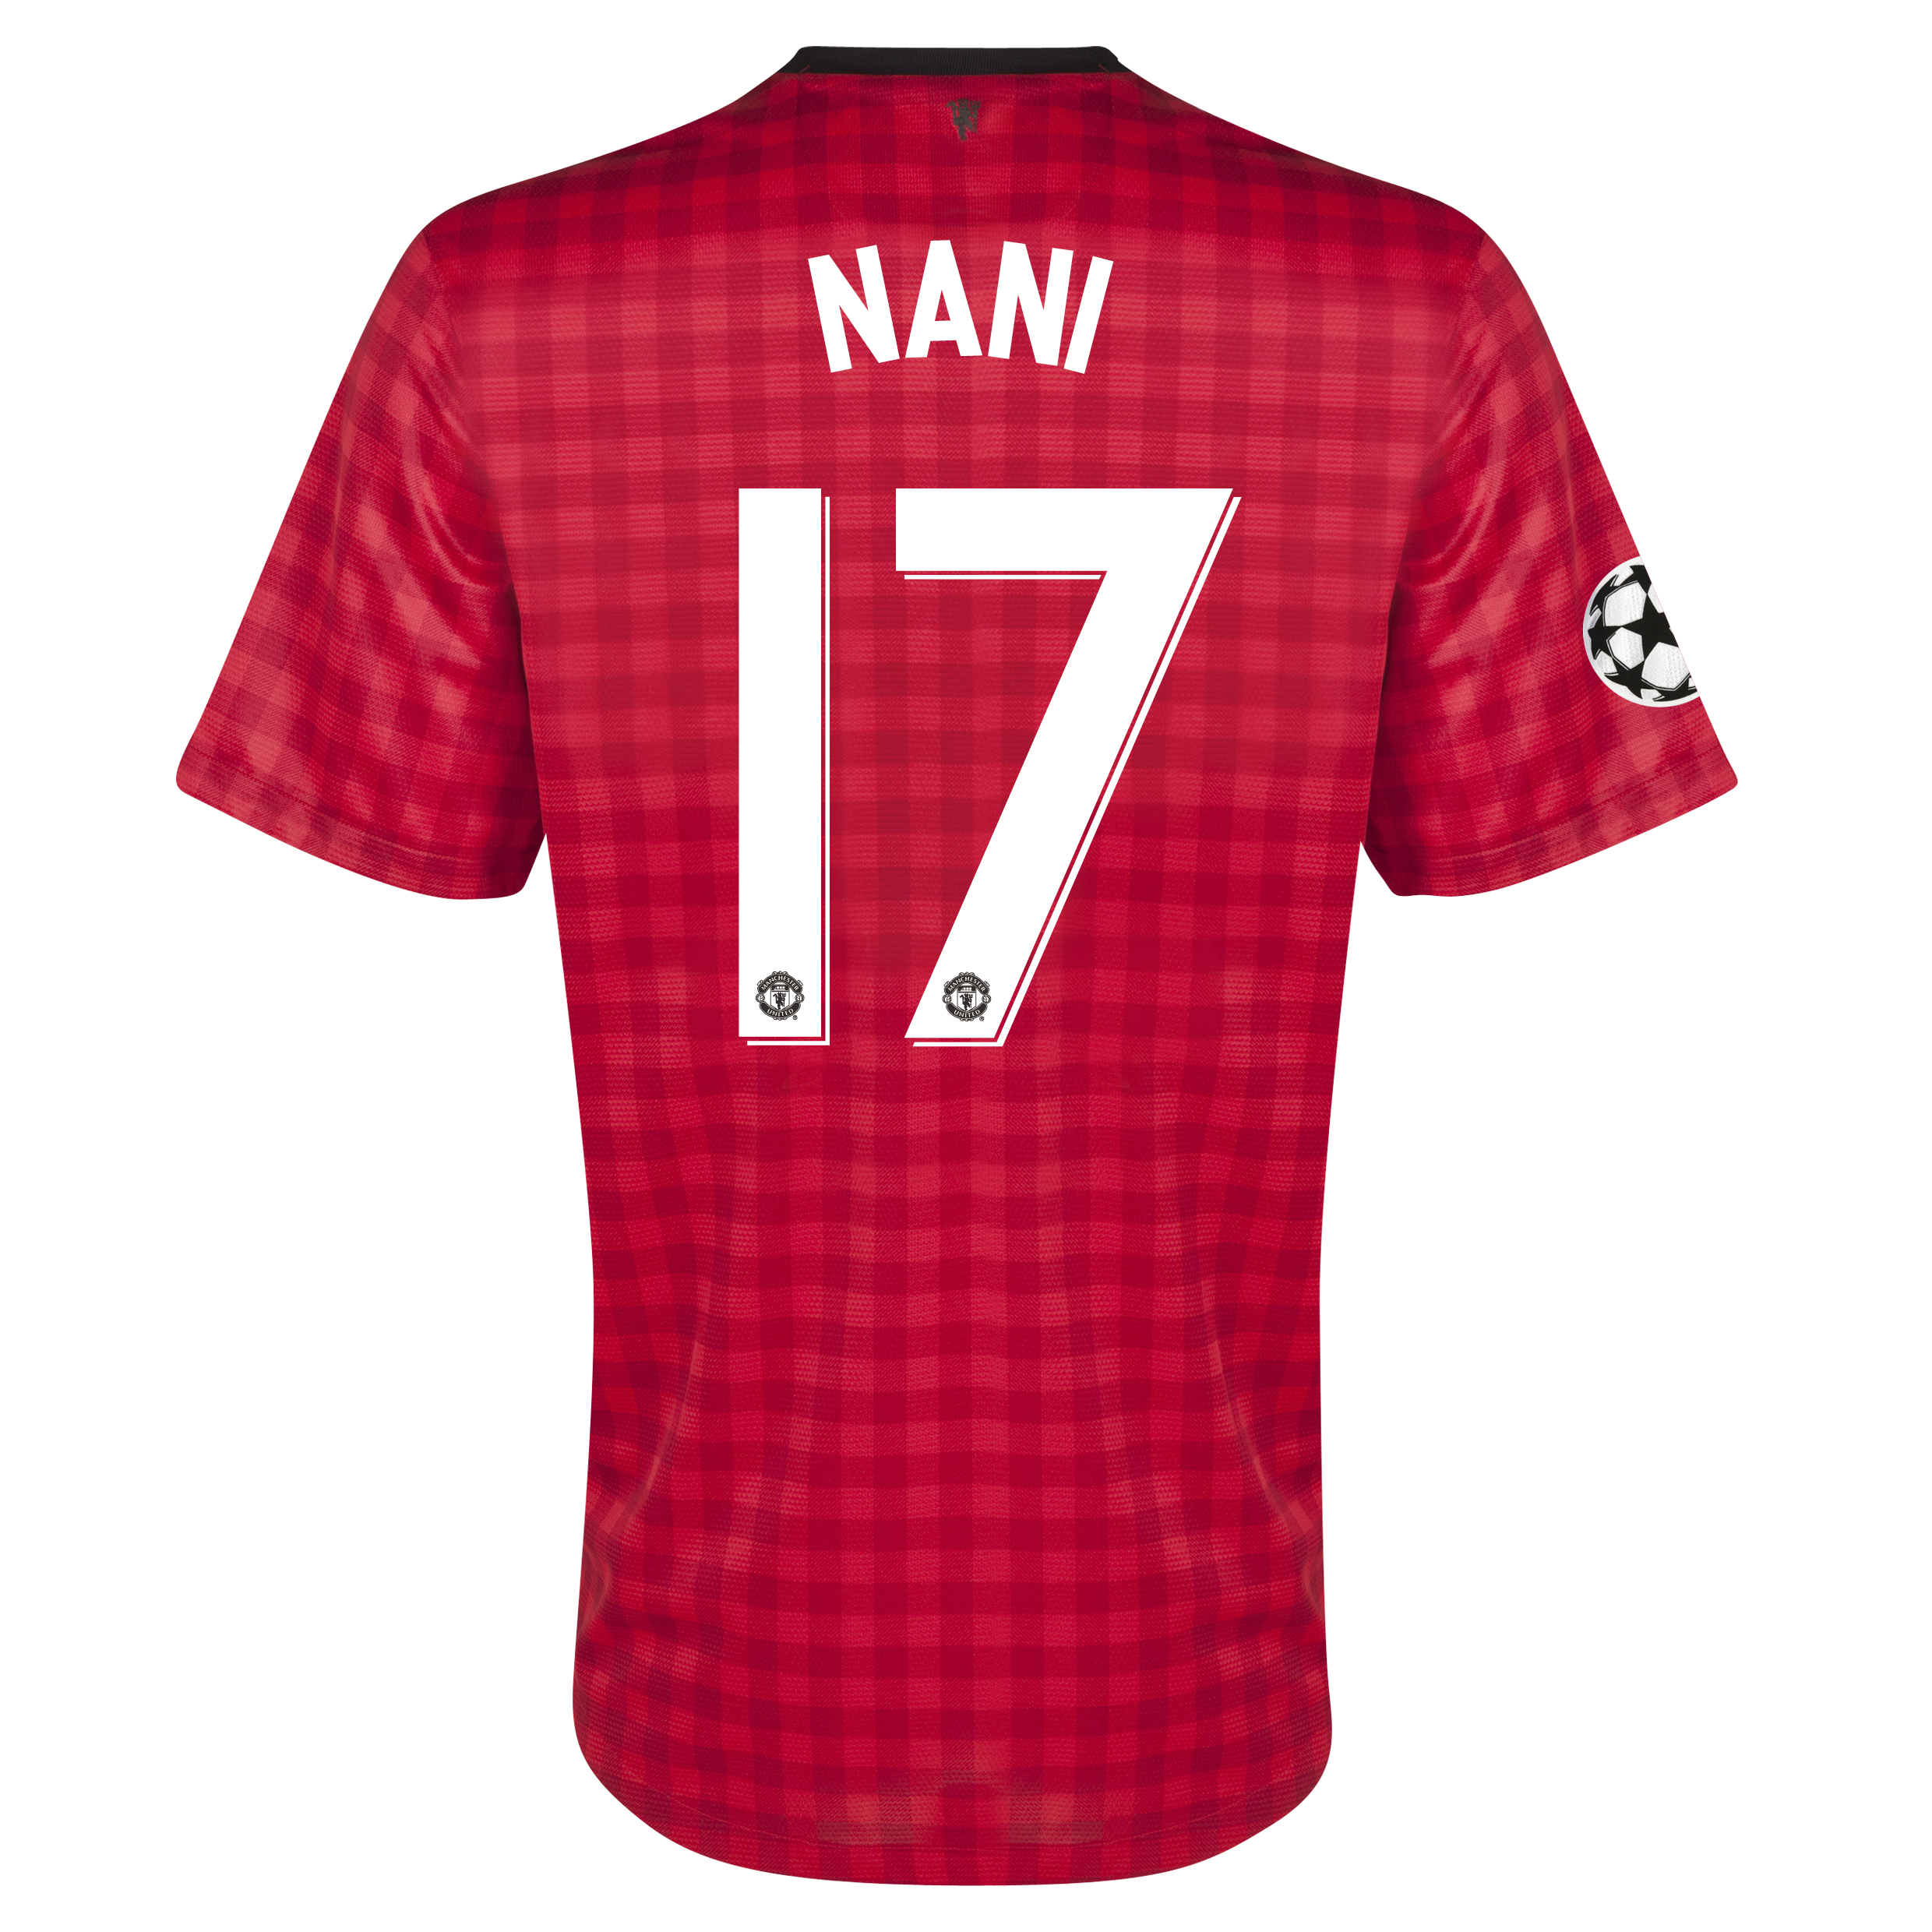 Manchester United UEFA Champions League Home Shirt 2012/13 with Nani 17 printing